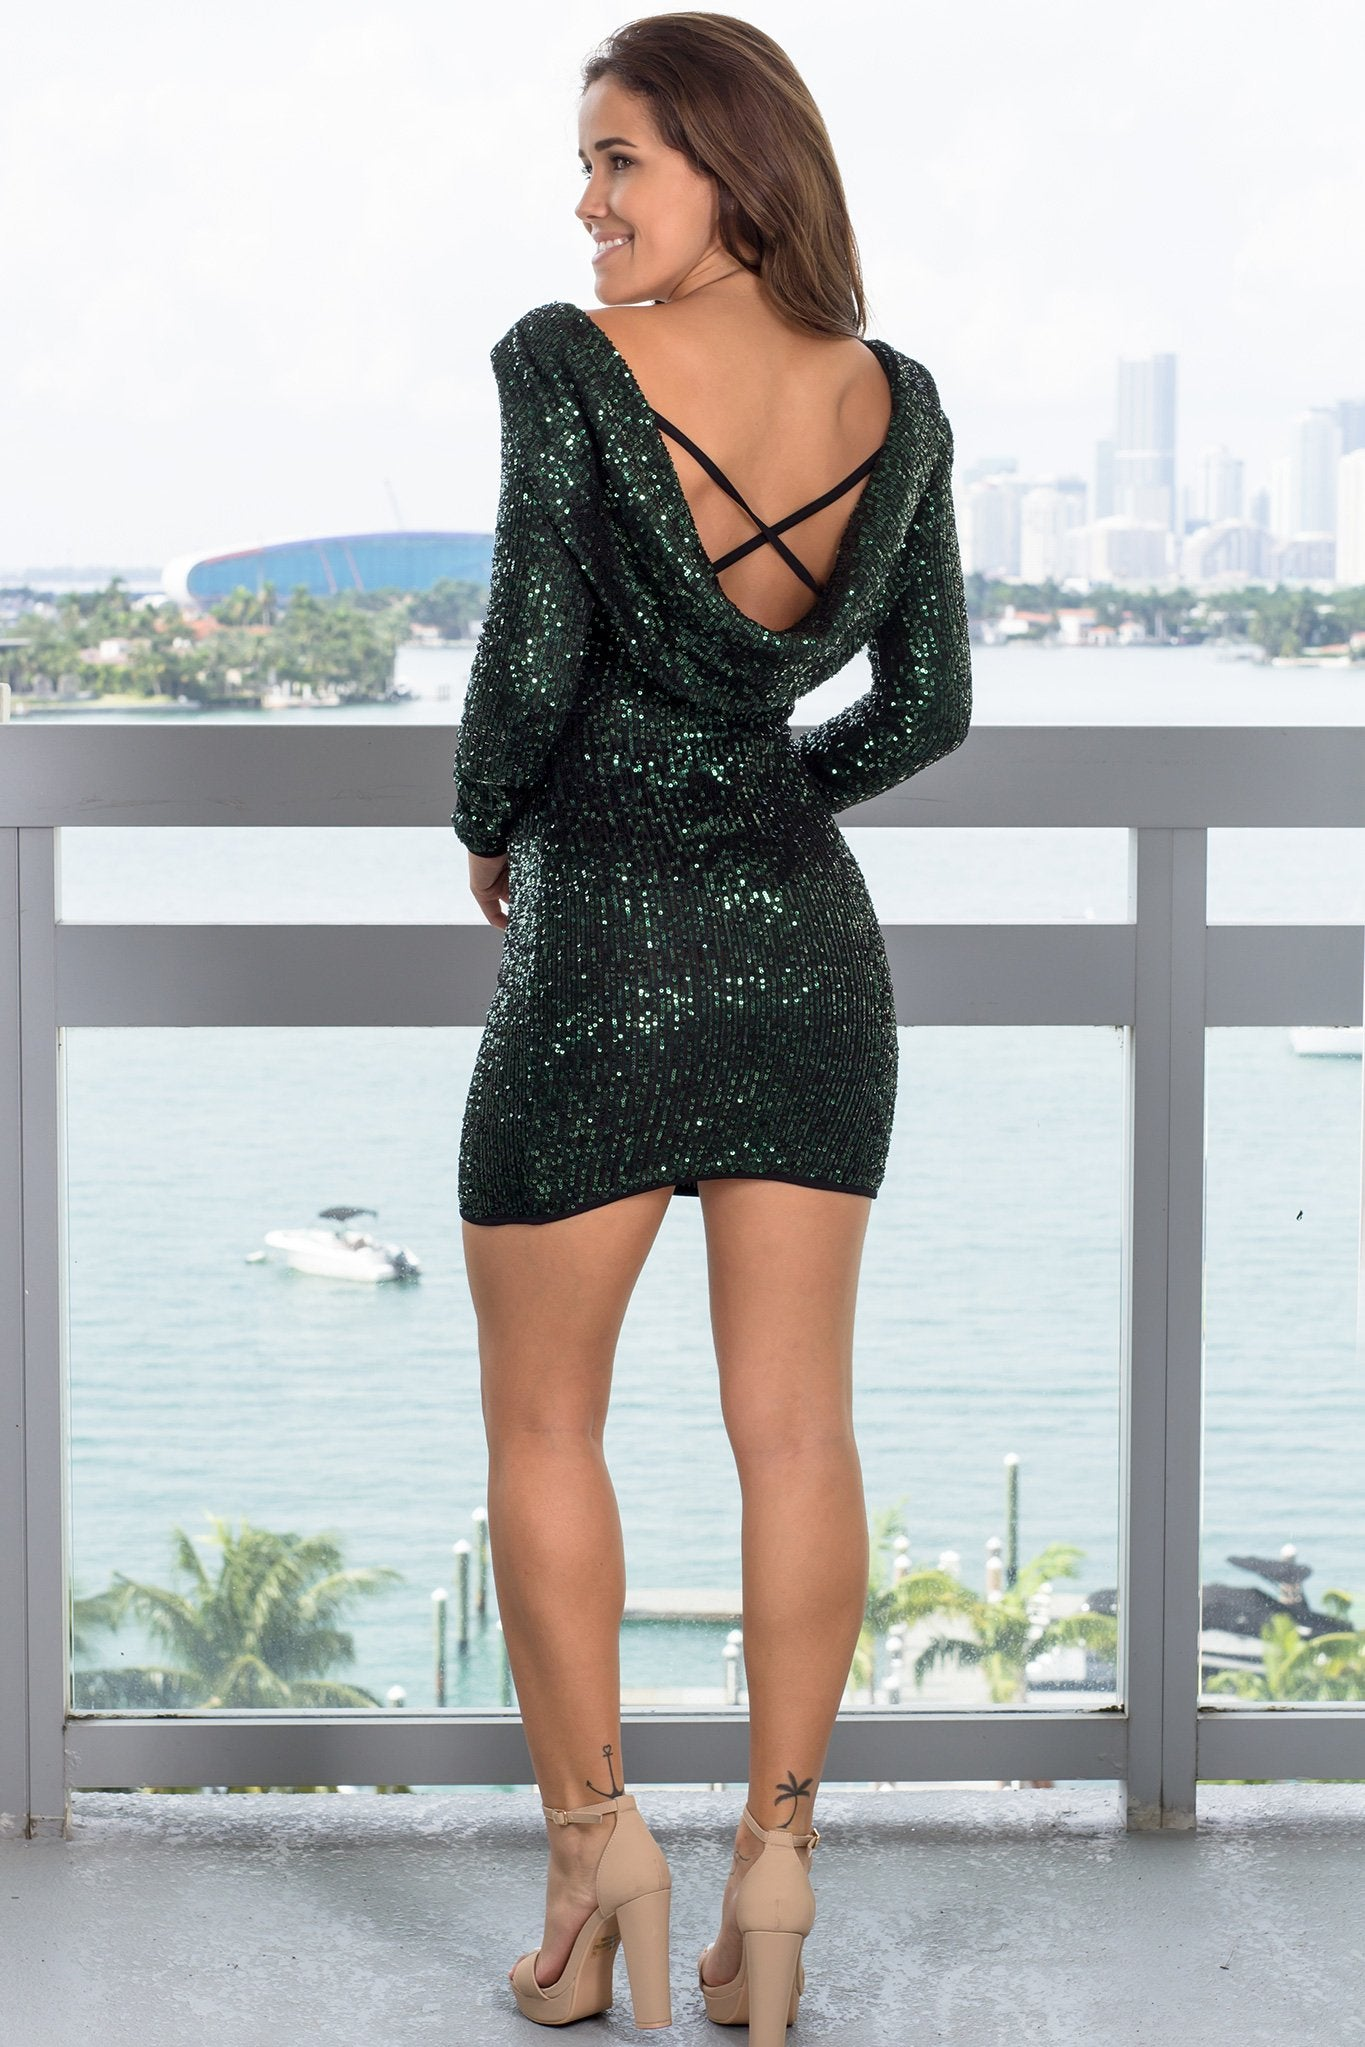 Hunter Green Sequined Short Dress with Open Back